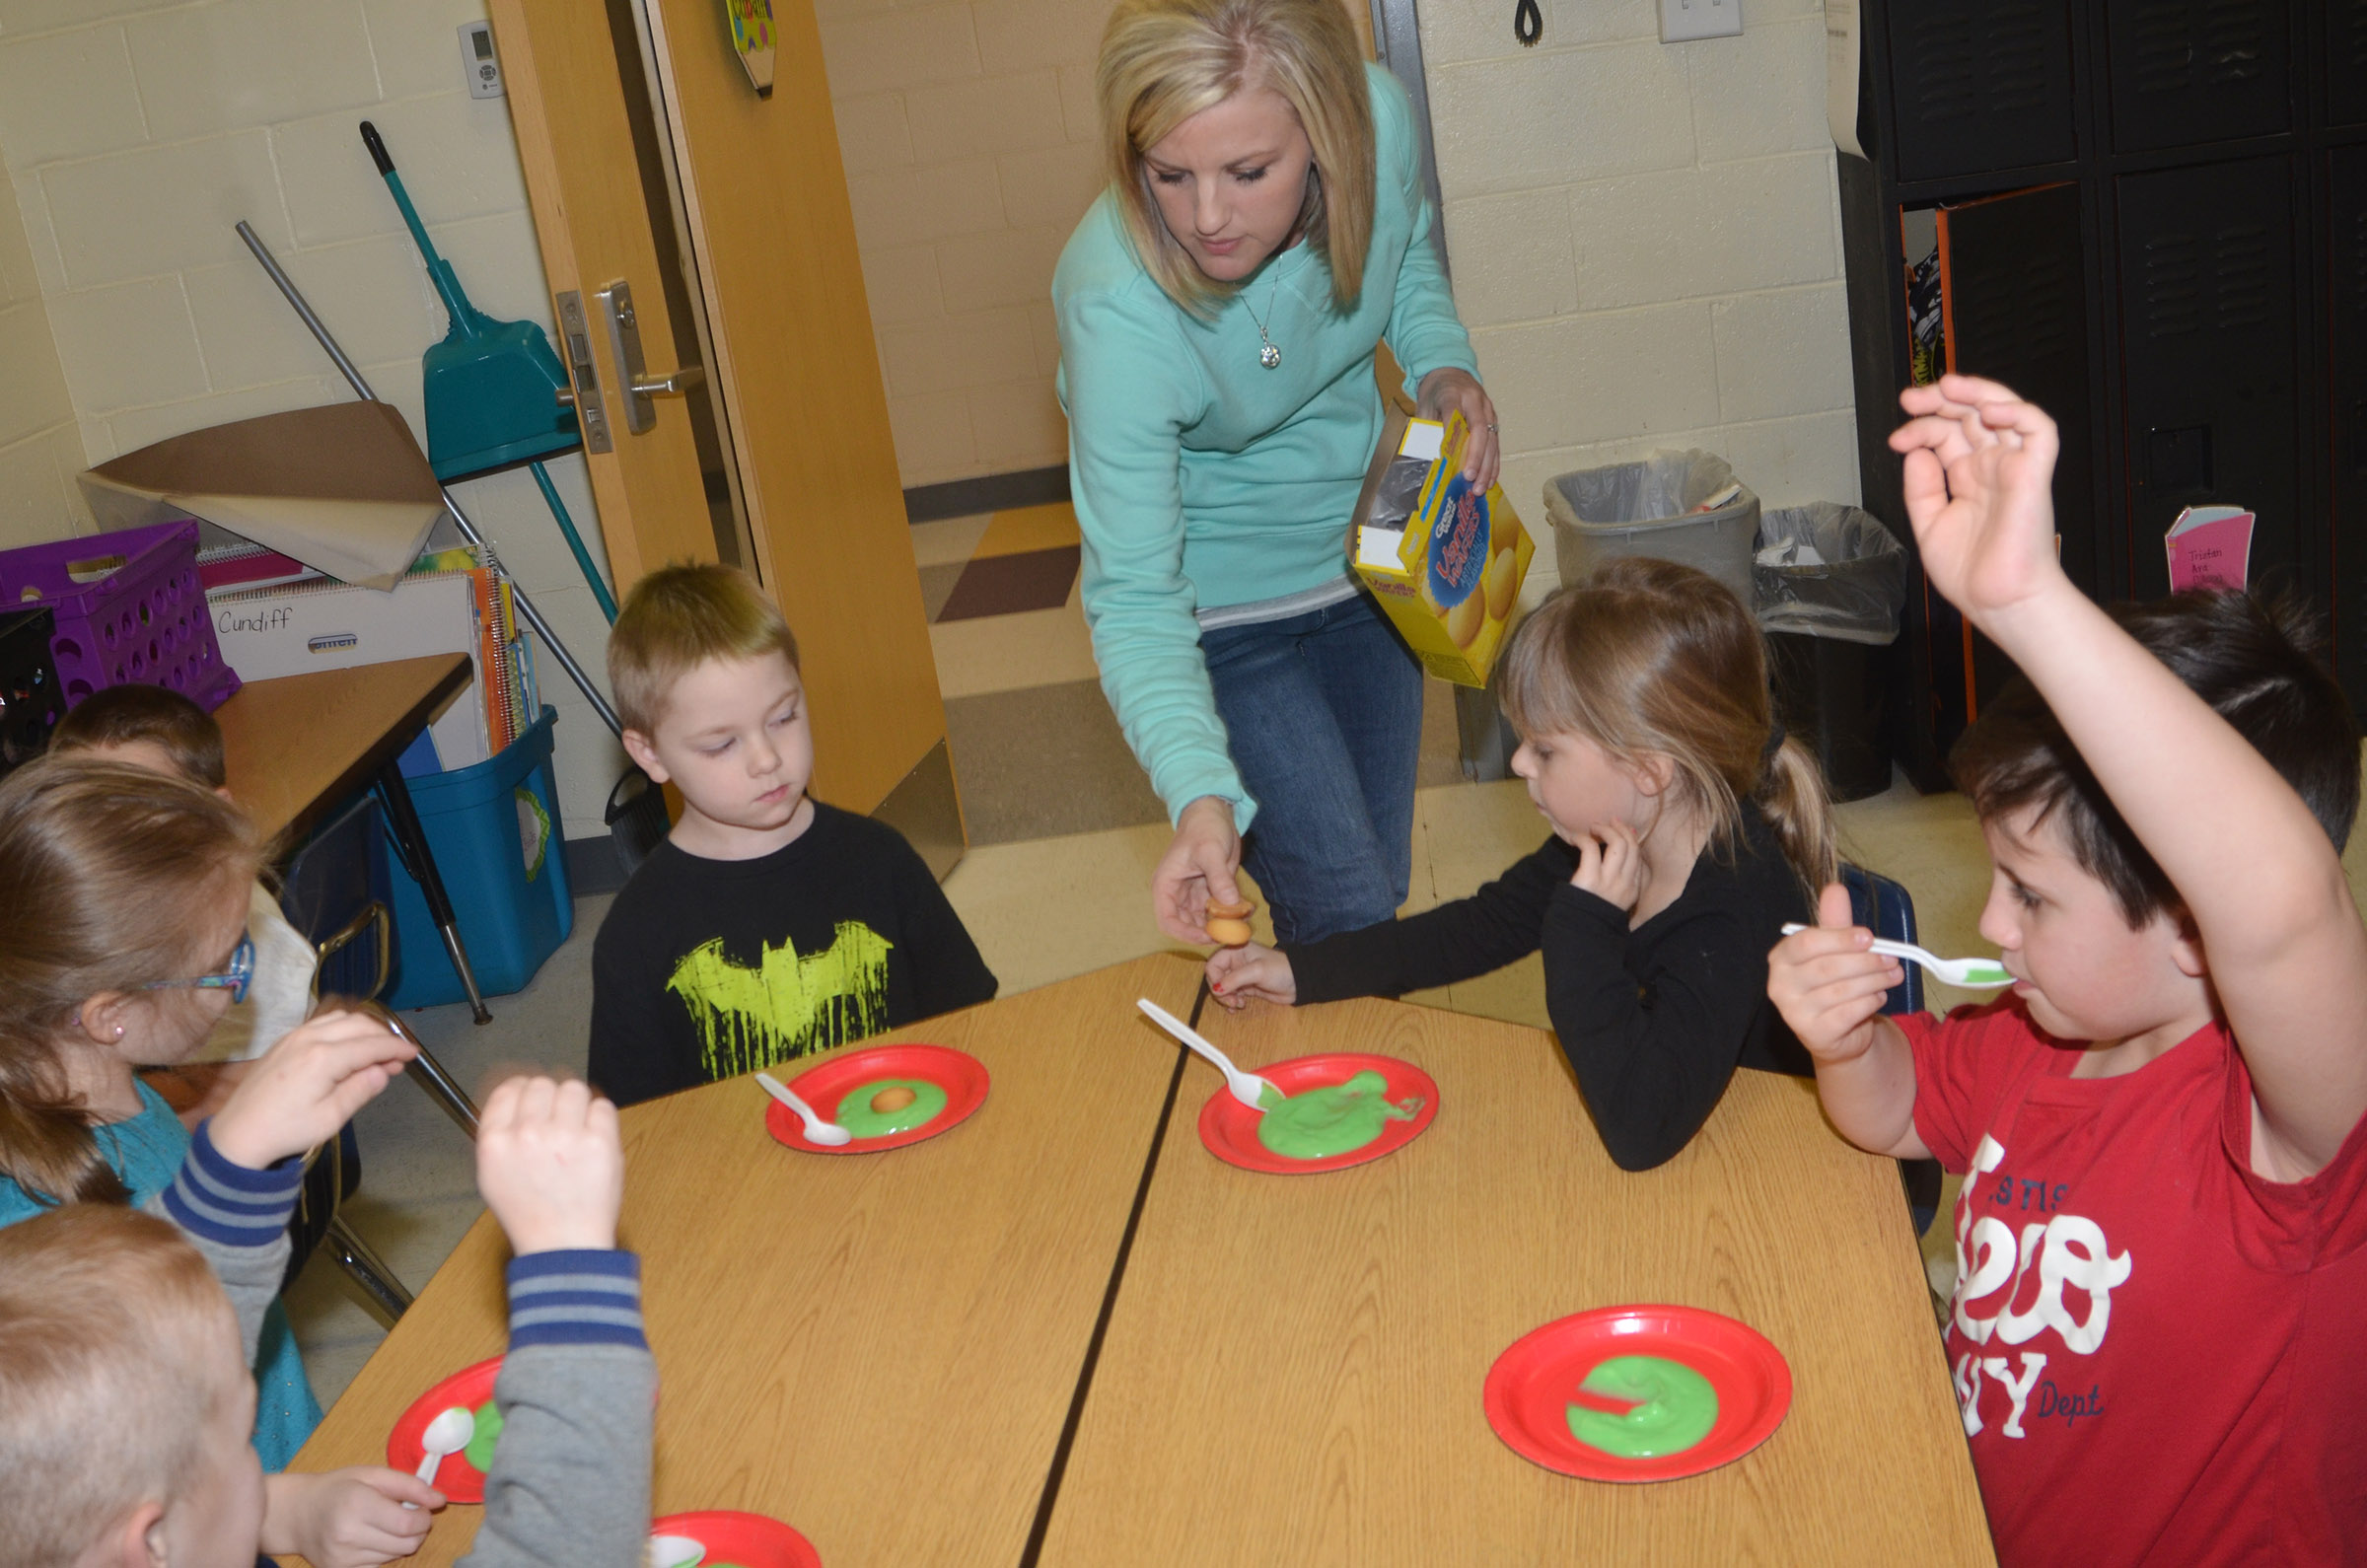 CES kindergarten teacher Leanna Cundiff passes out vanilla wafers to her students.